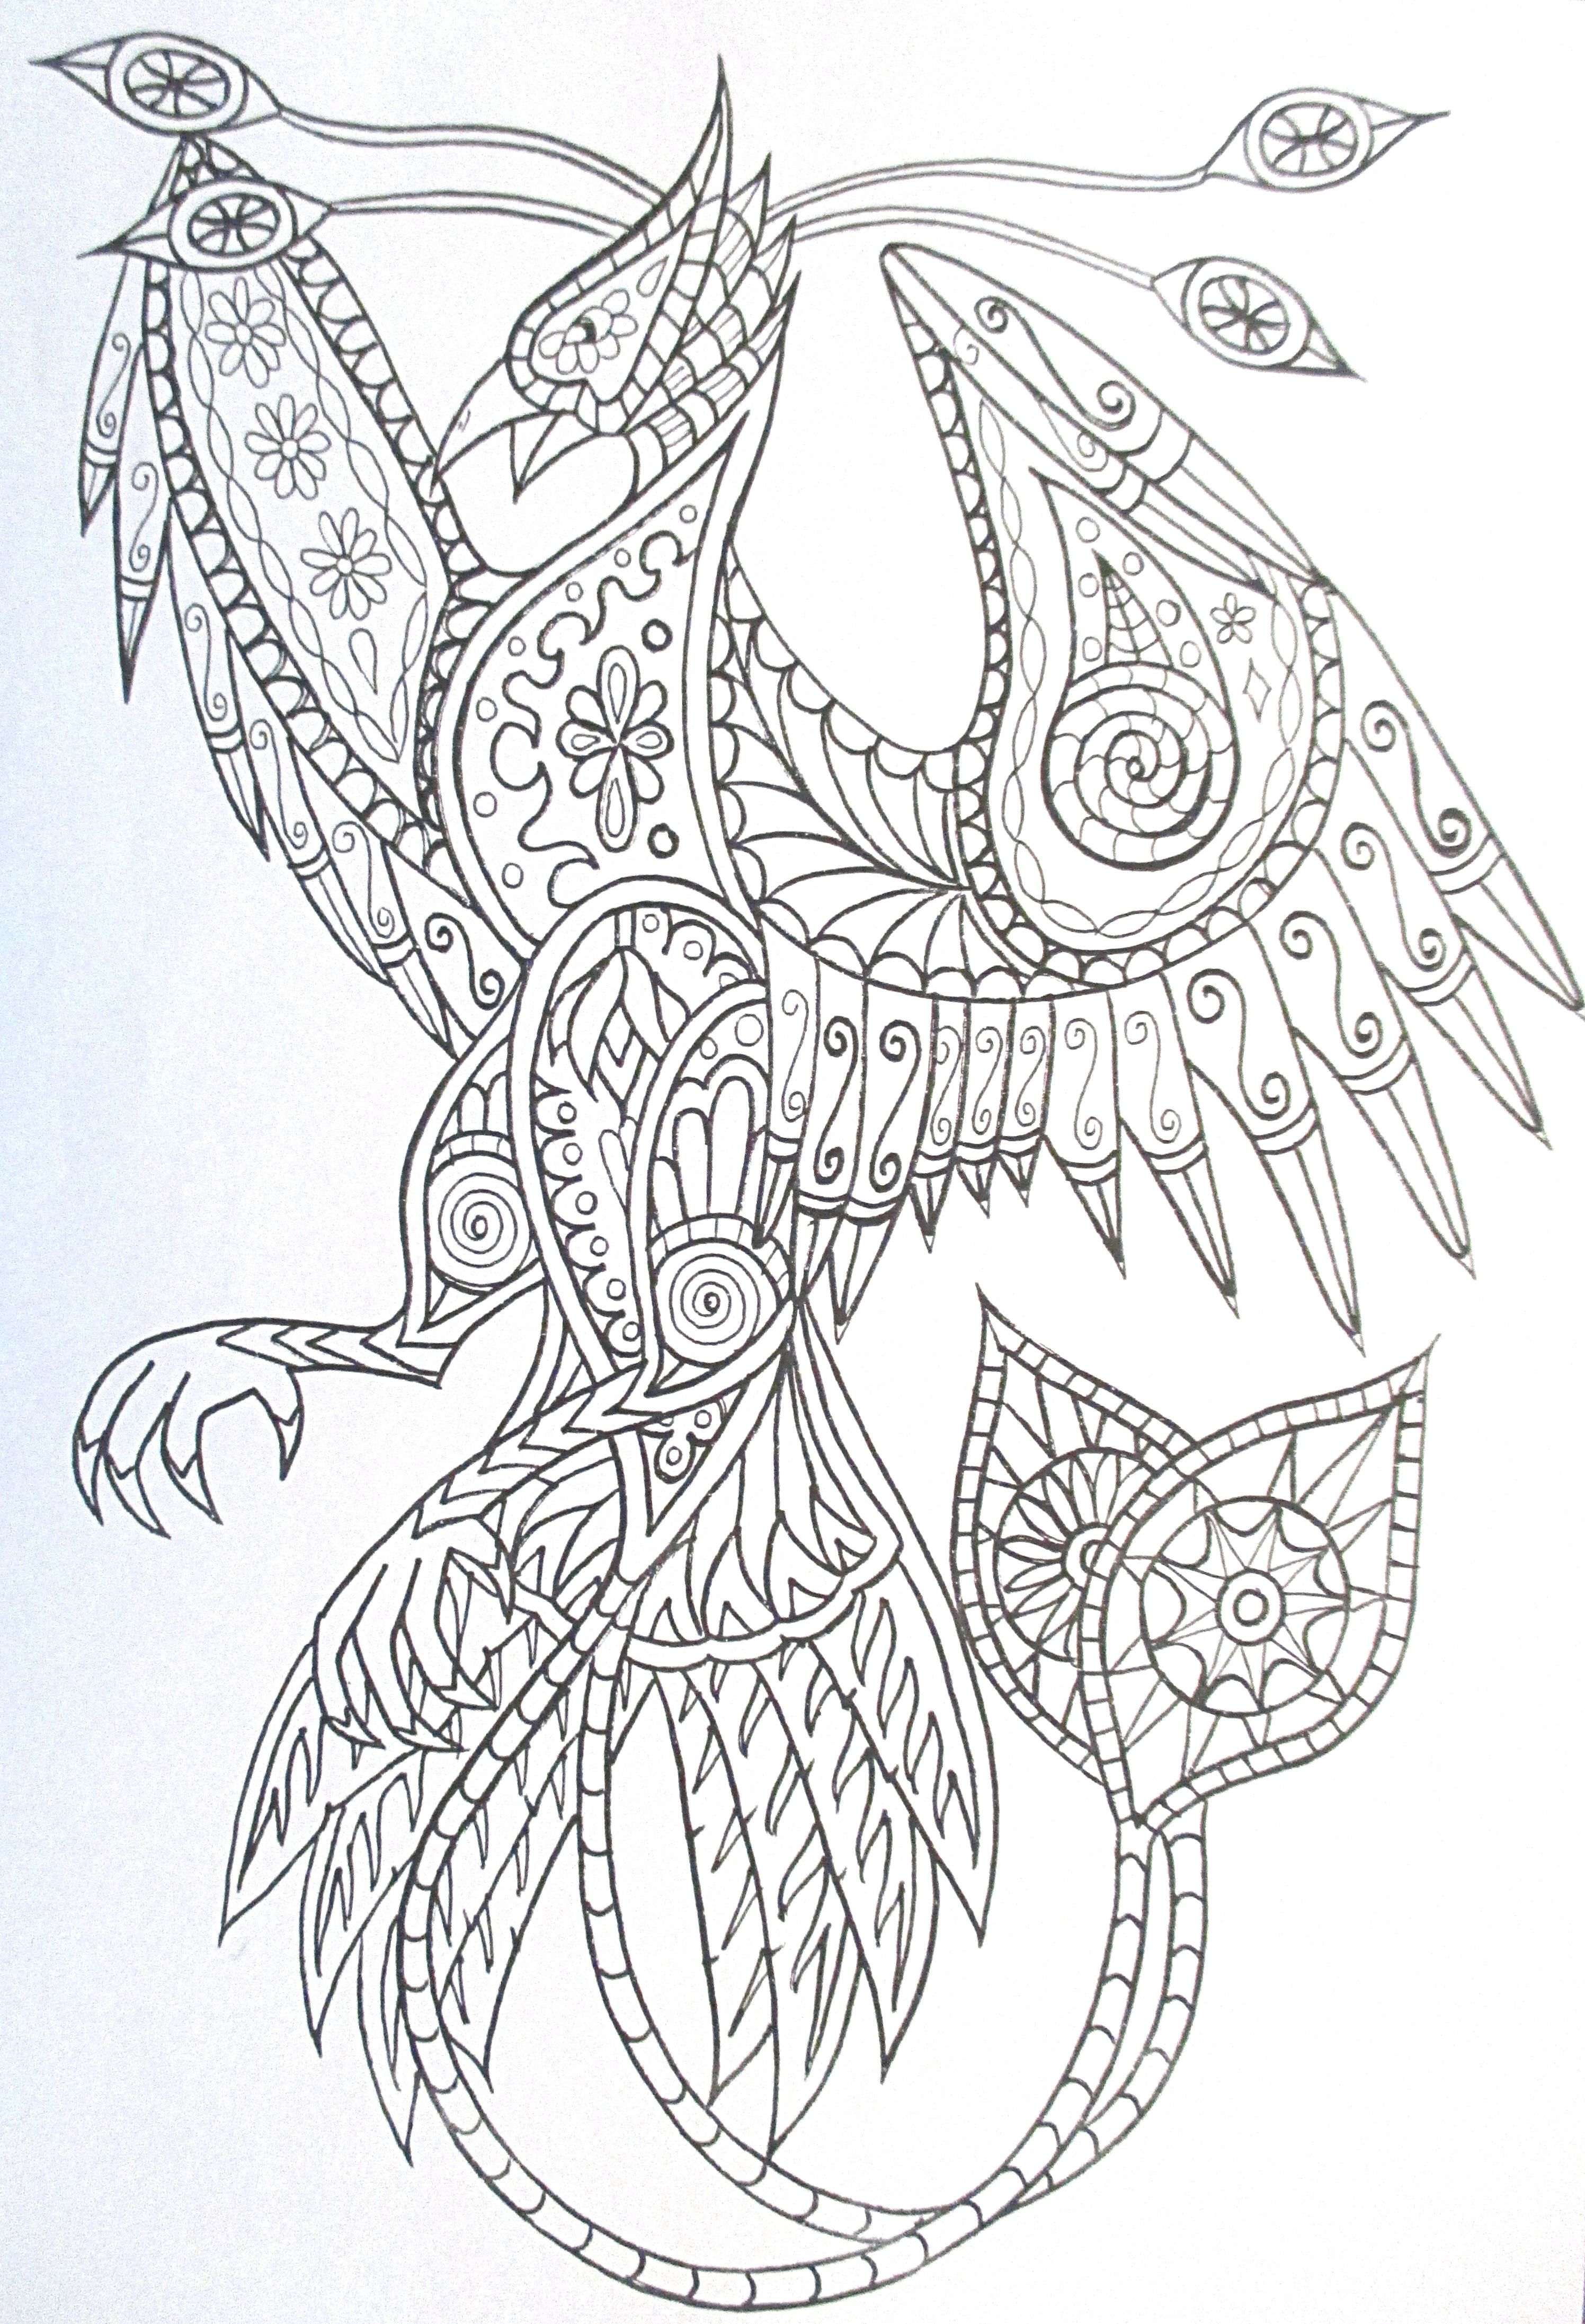 Adult coloring pages for stress relief - Steampunk Phoenix Coloring Page Printable Adult Kleuren Voor Volwassenen F Rbung F R Erwachsene Coloriage Pour Adultes Colorare